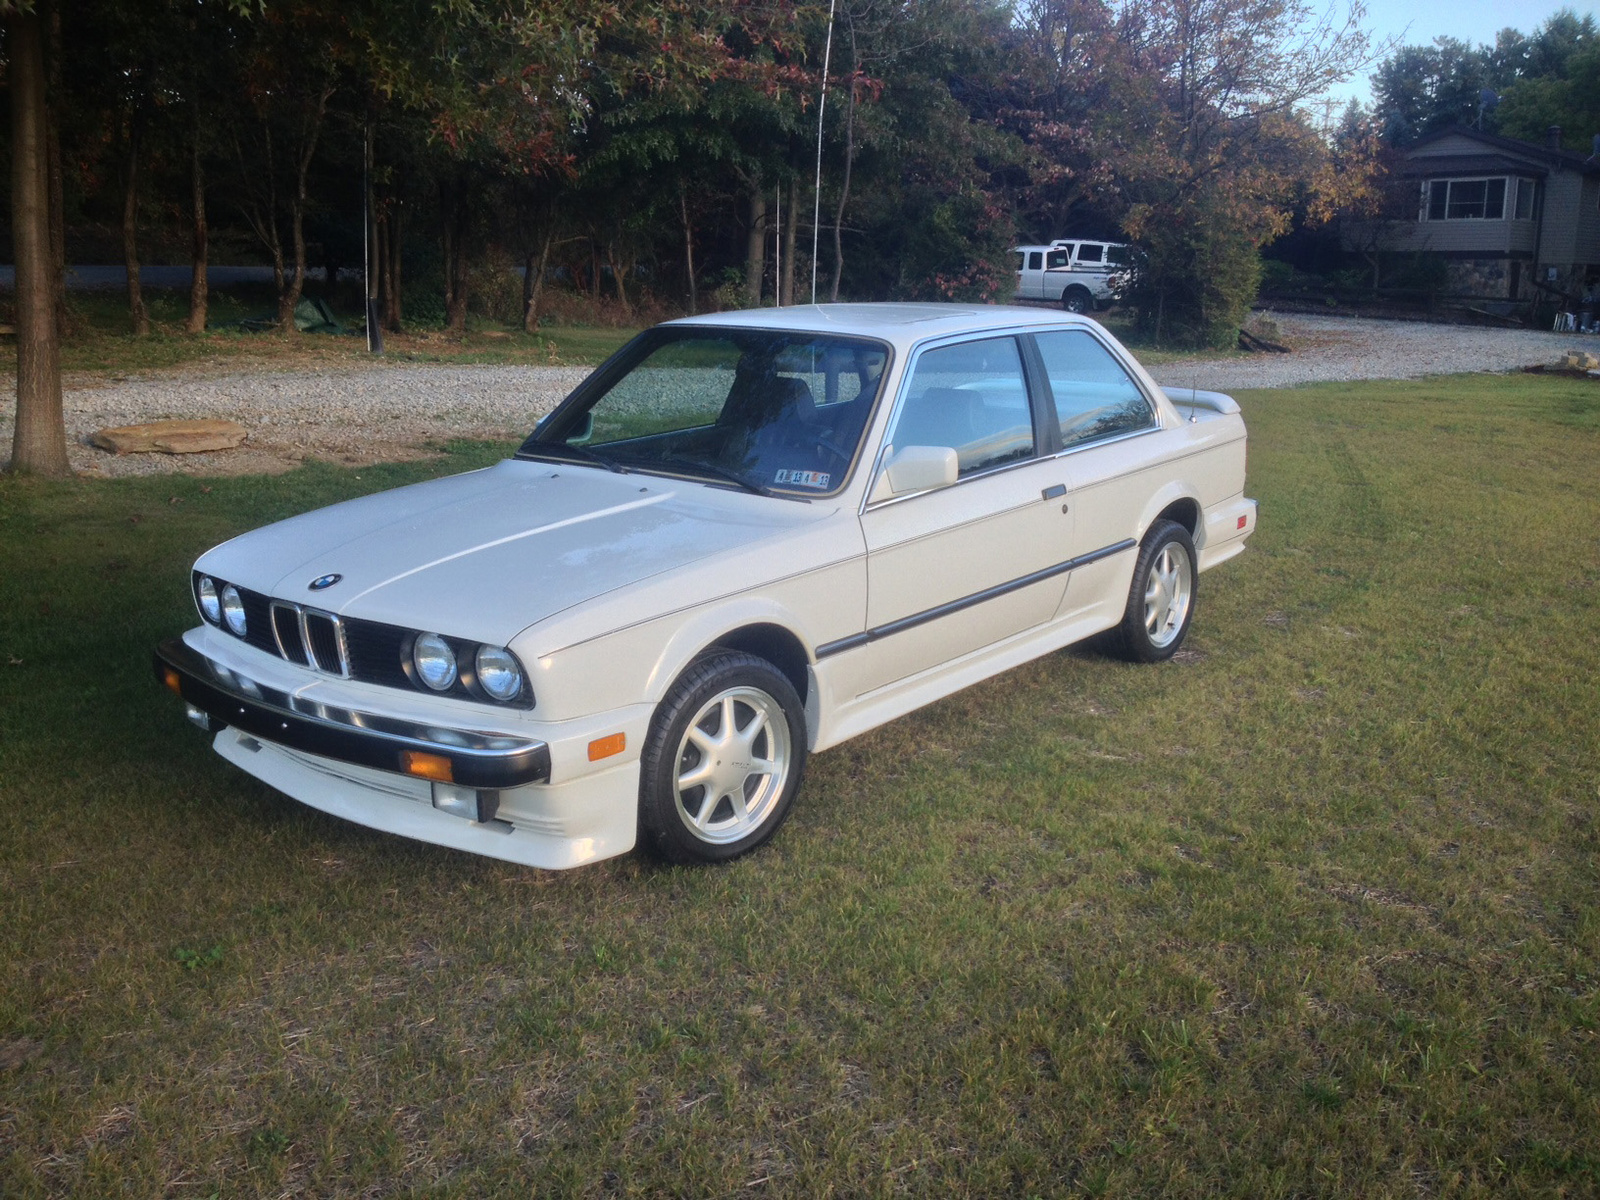 Certified Pre Owned Bmw >> 1984 BMW 3 Series 318i Coupe For Sale - CarGurus